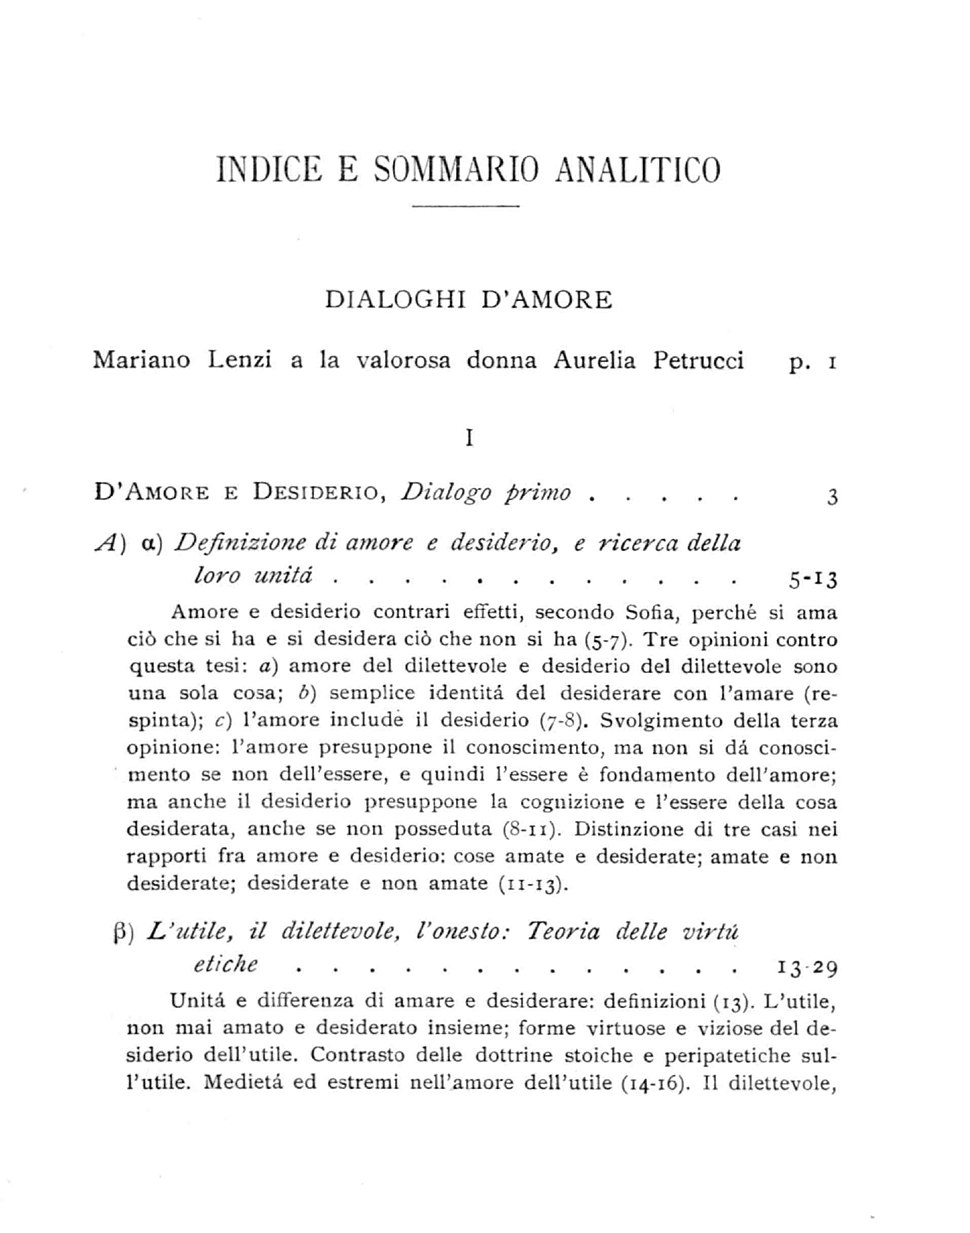 Abrabanel - Dialoghi d'amore, 1929 - 1855777